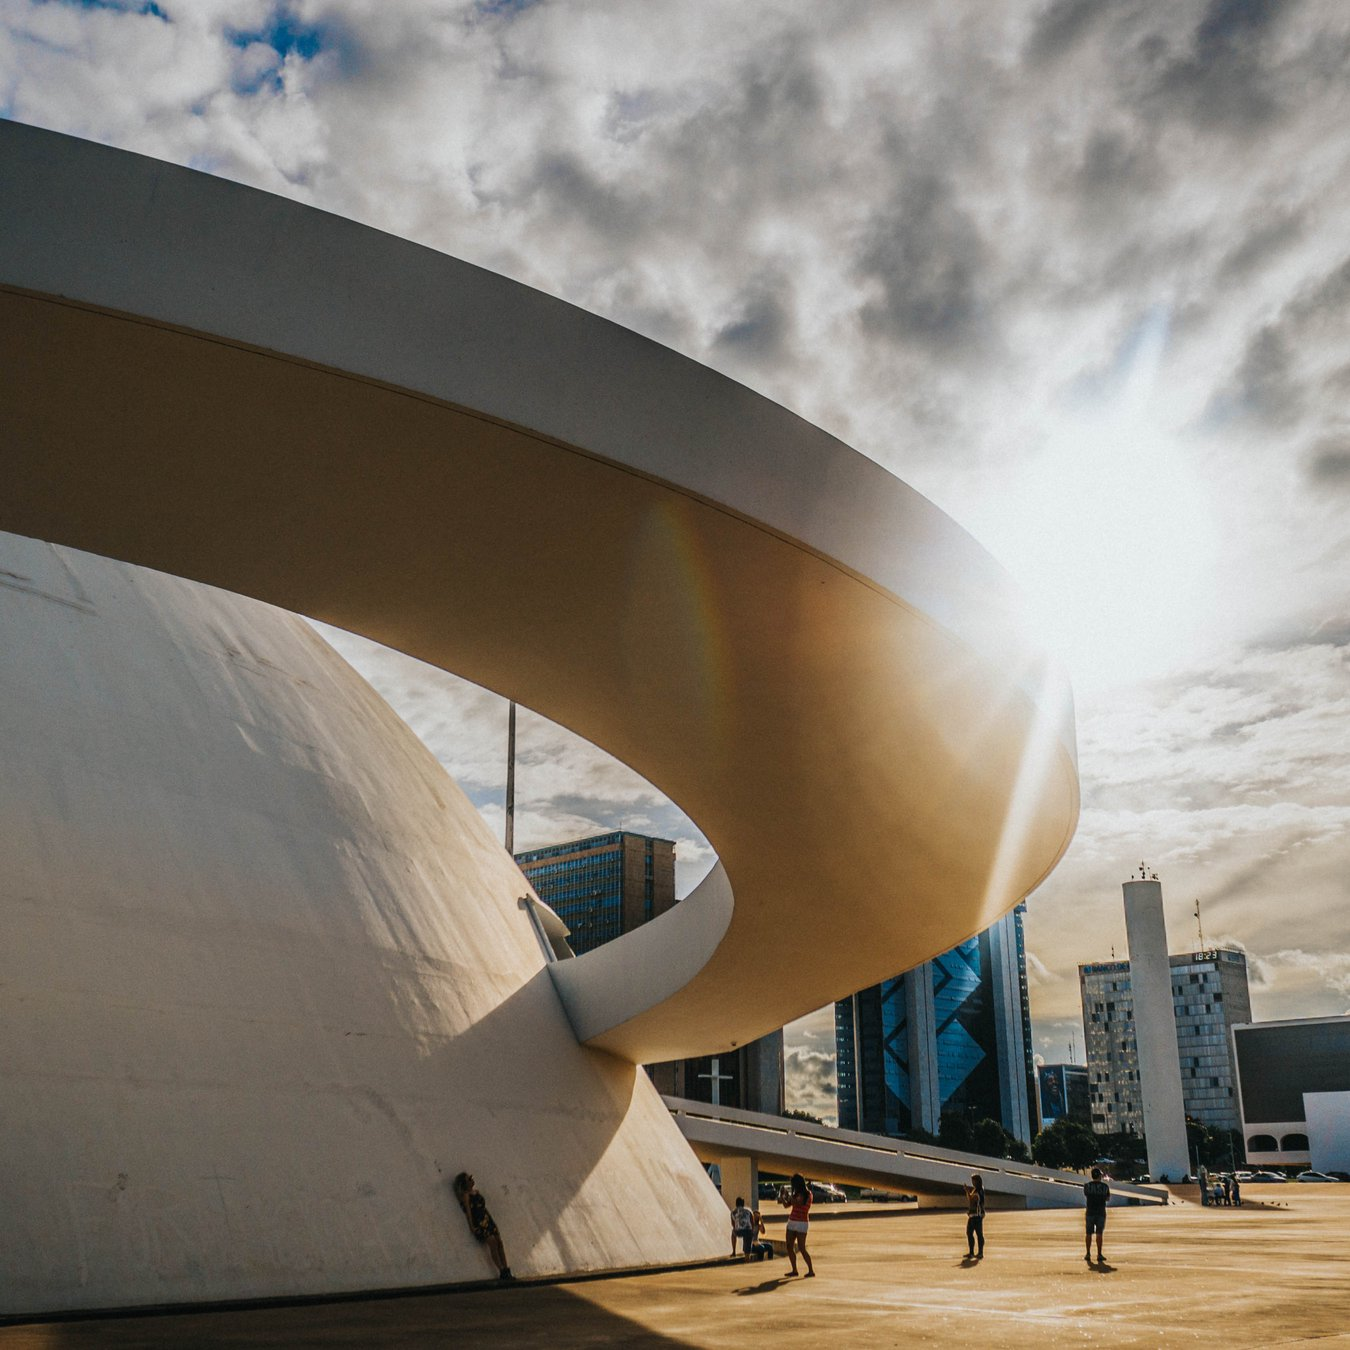 people walking on park near white concrete building under gray clouds during daytime